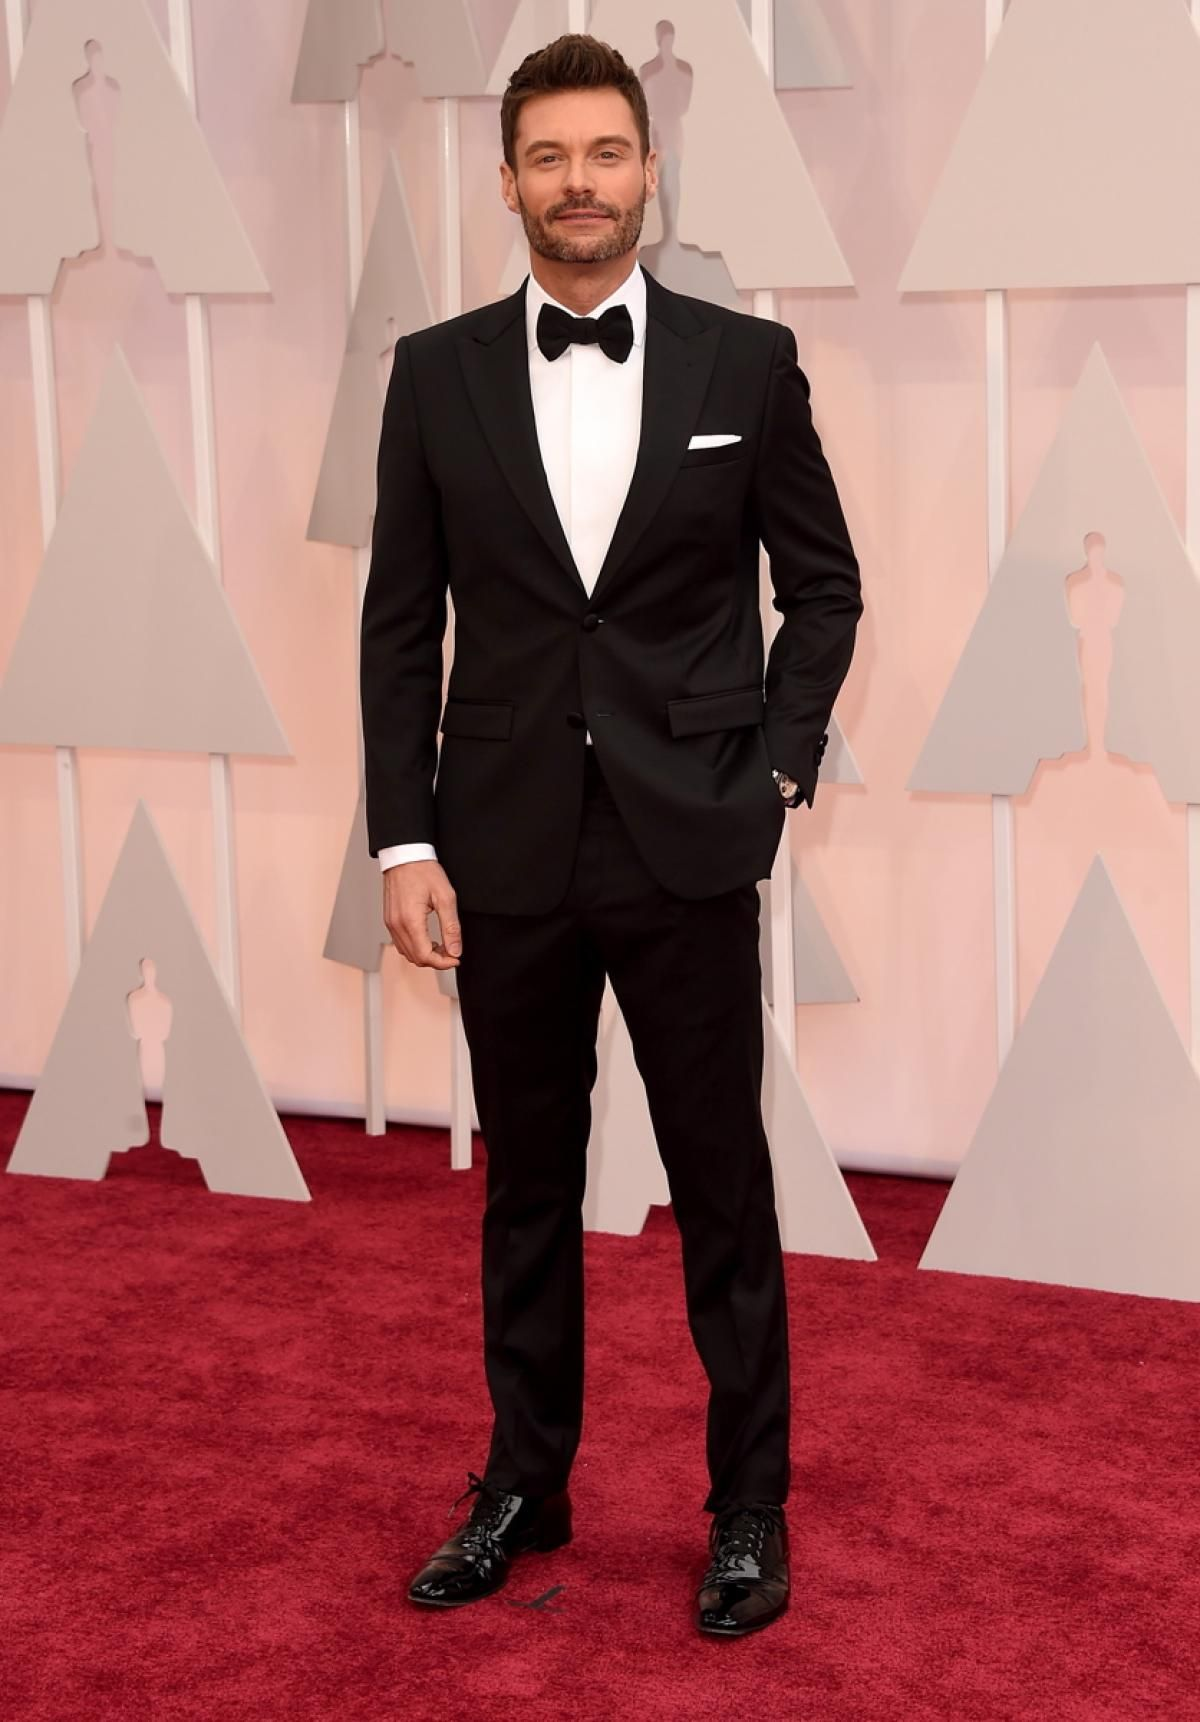 Ryan seacrest photos oscars 2015 best and worst red carpet looks when i marry him - Oscars red carpet coverage ...